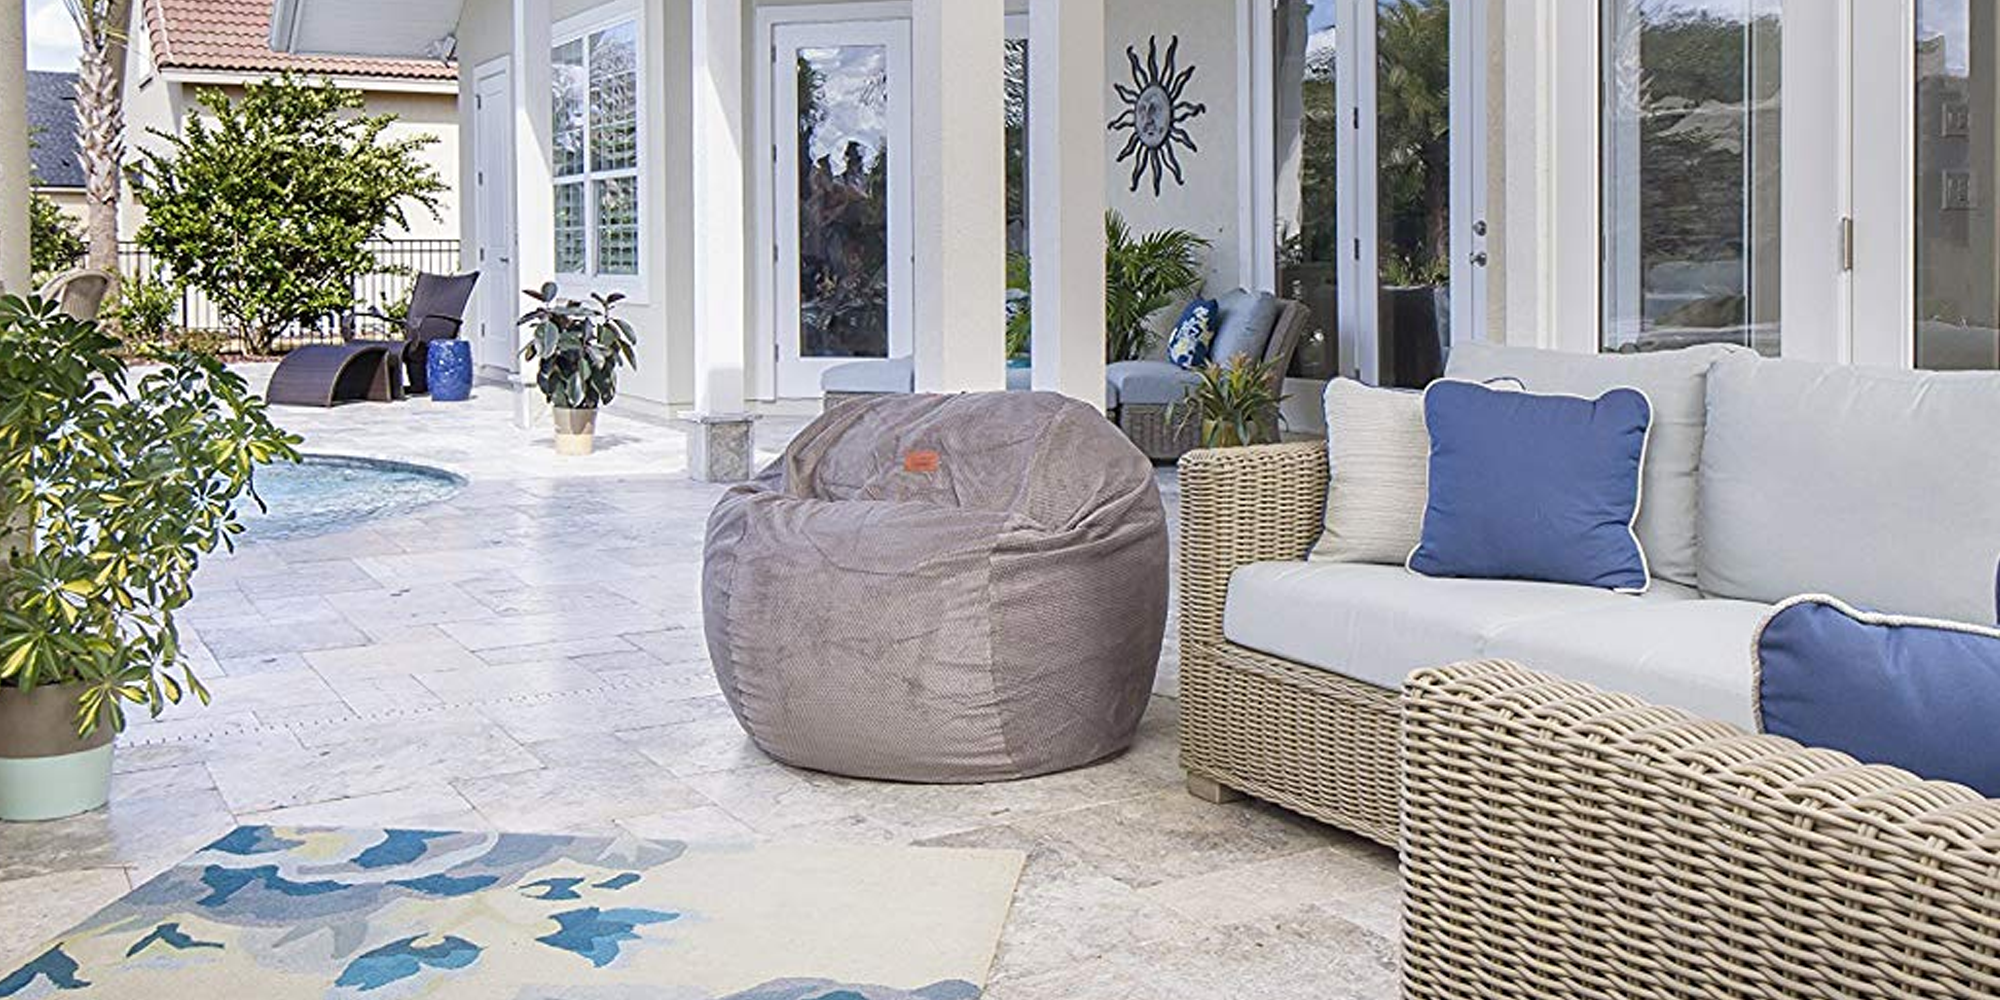 Pleasing 8 Best Bean Bag Chairs To Buy For Your Home Beatyapartments Chair Design Images Beatyapartmentscom